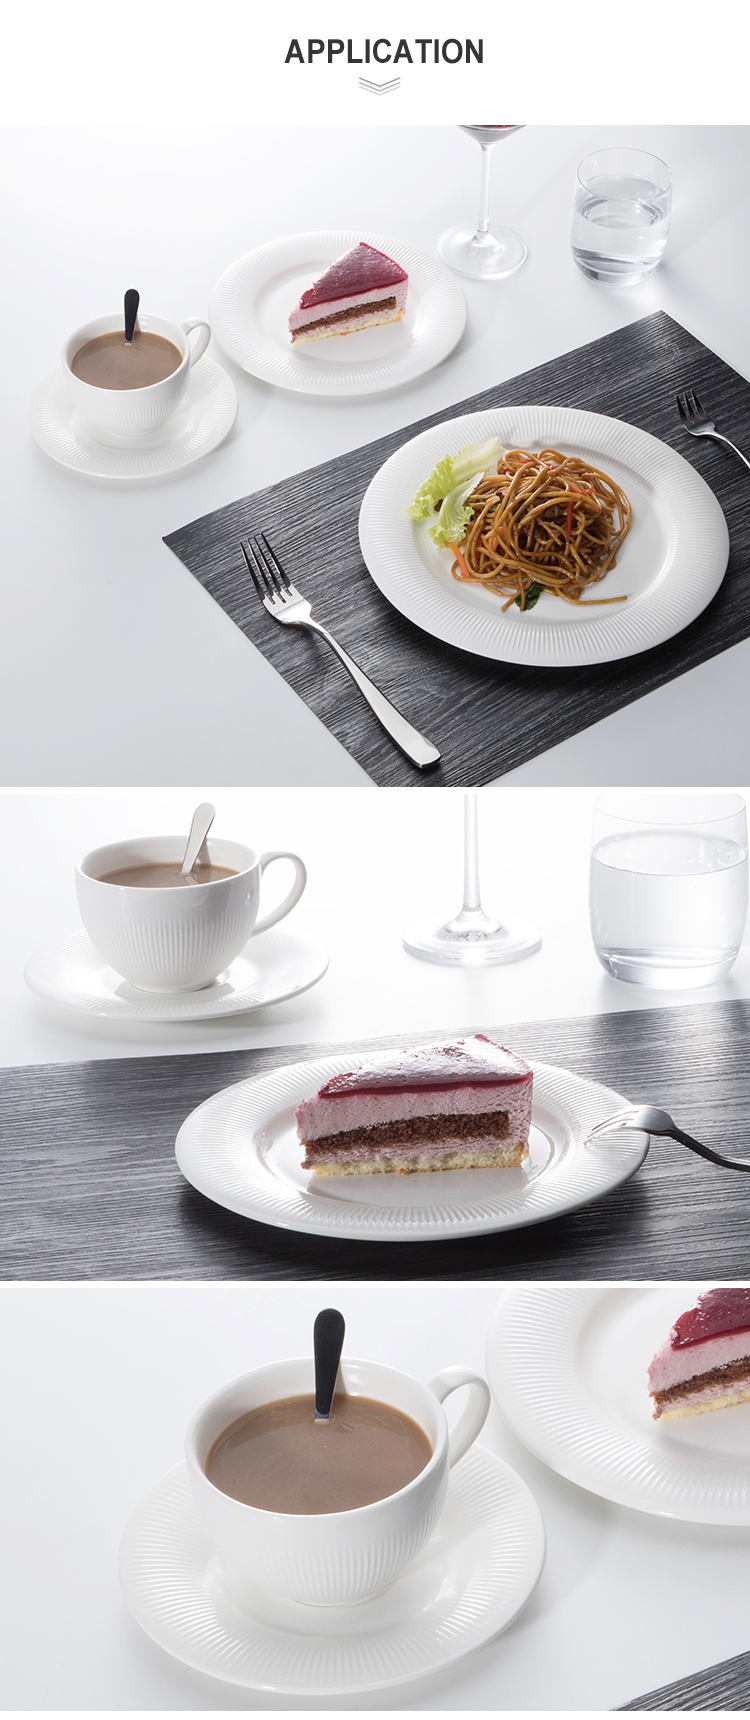 Hotel Supplier Cheap Bulk Tableware Ceramic Dinner Plates, Dinnerware Set Porcelain Coffee Cup, Restaurant Serving Dishes